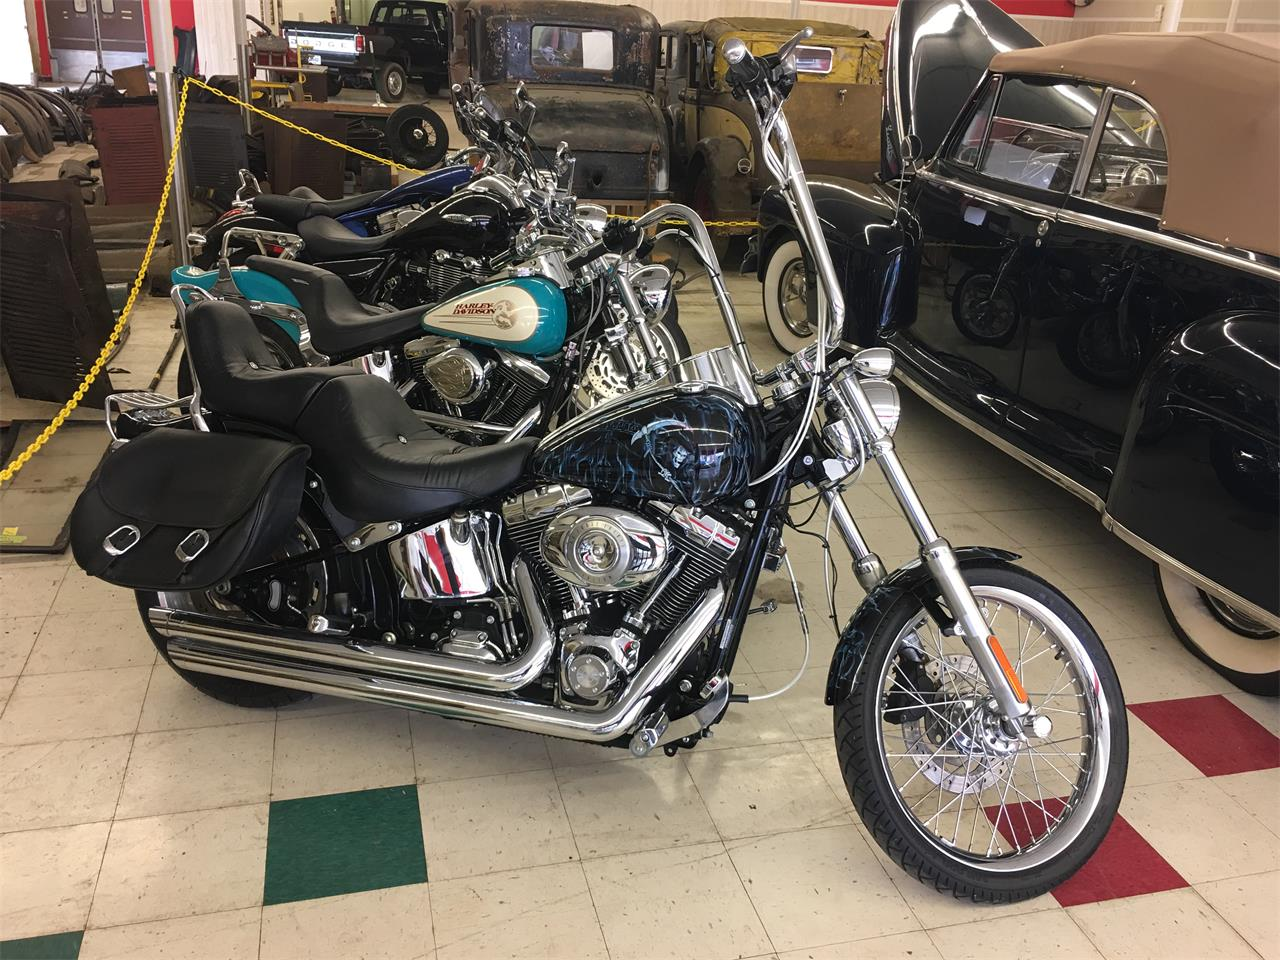 2010 Harley-Davidson Softail (CC-1226631) for sale in Paris, Kentucky